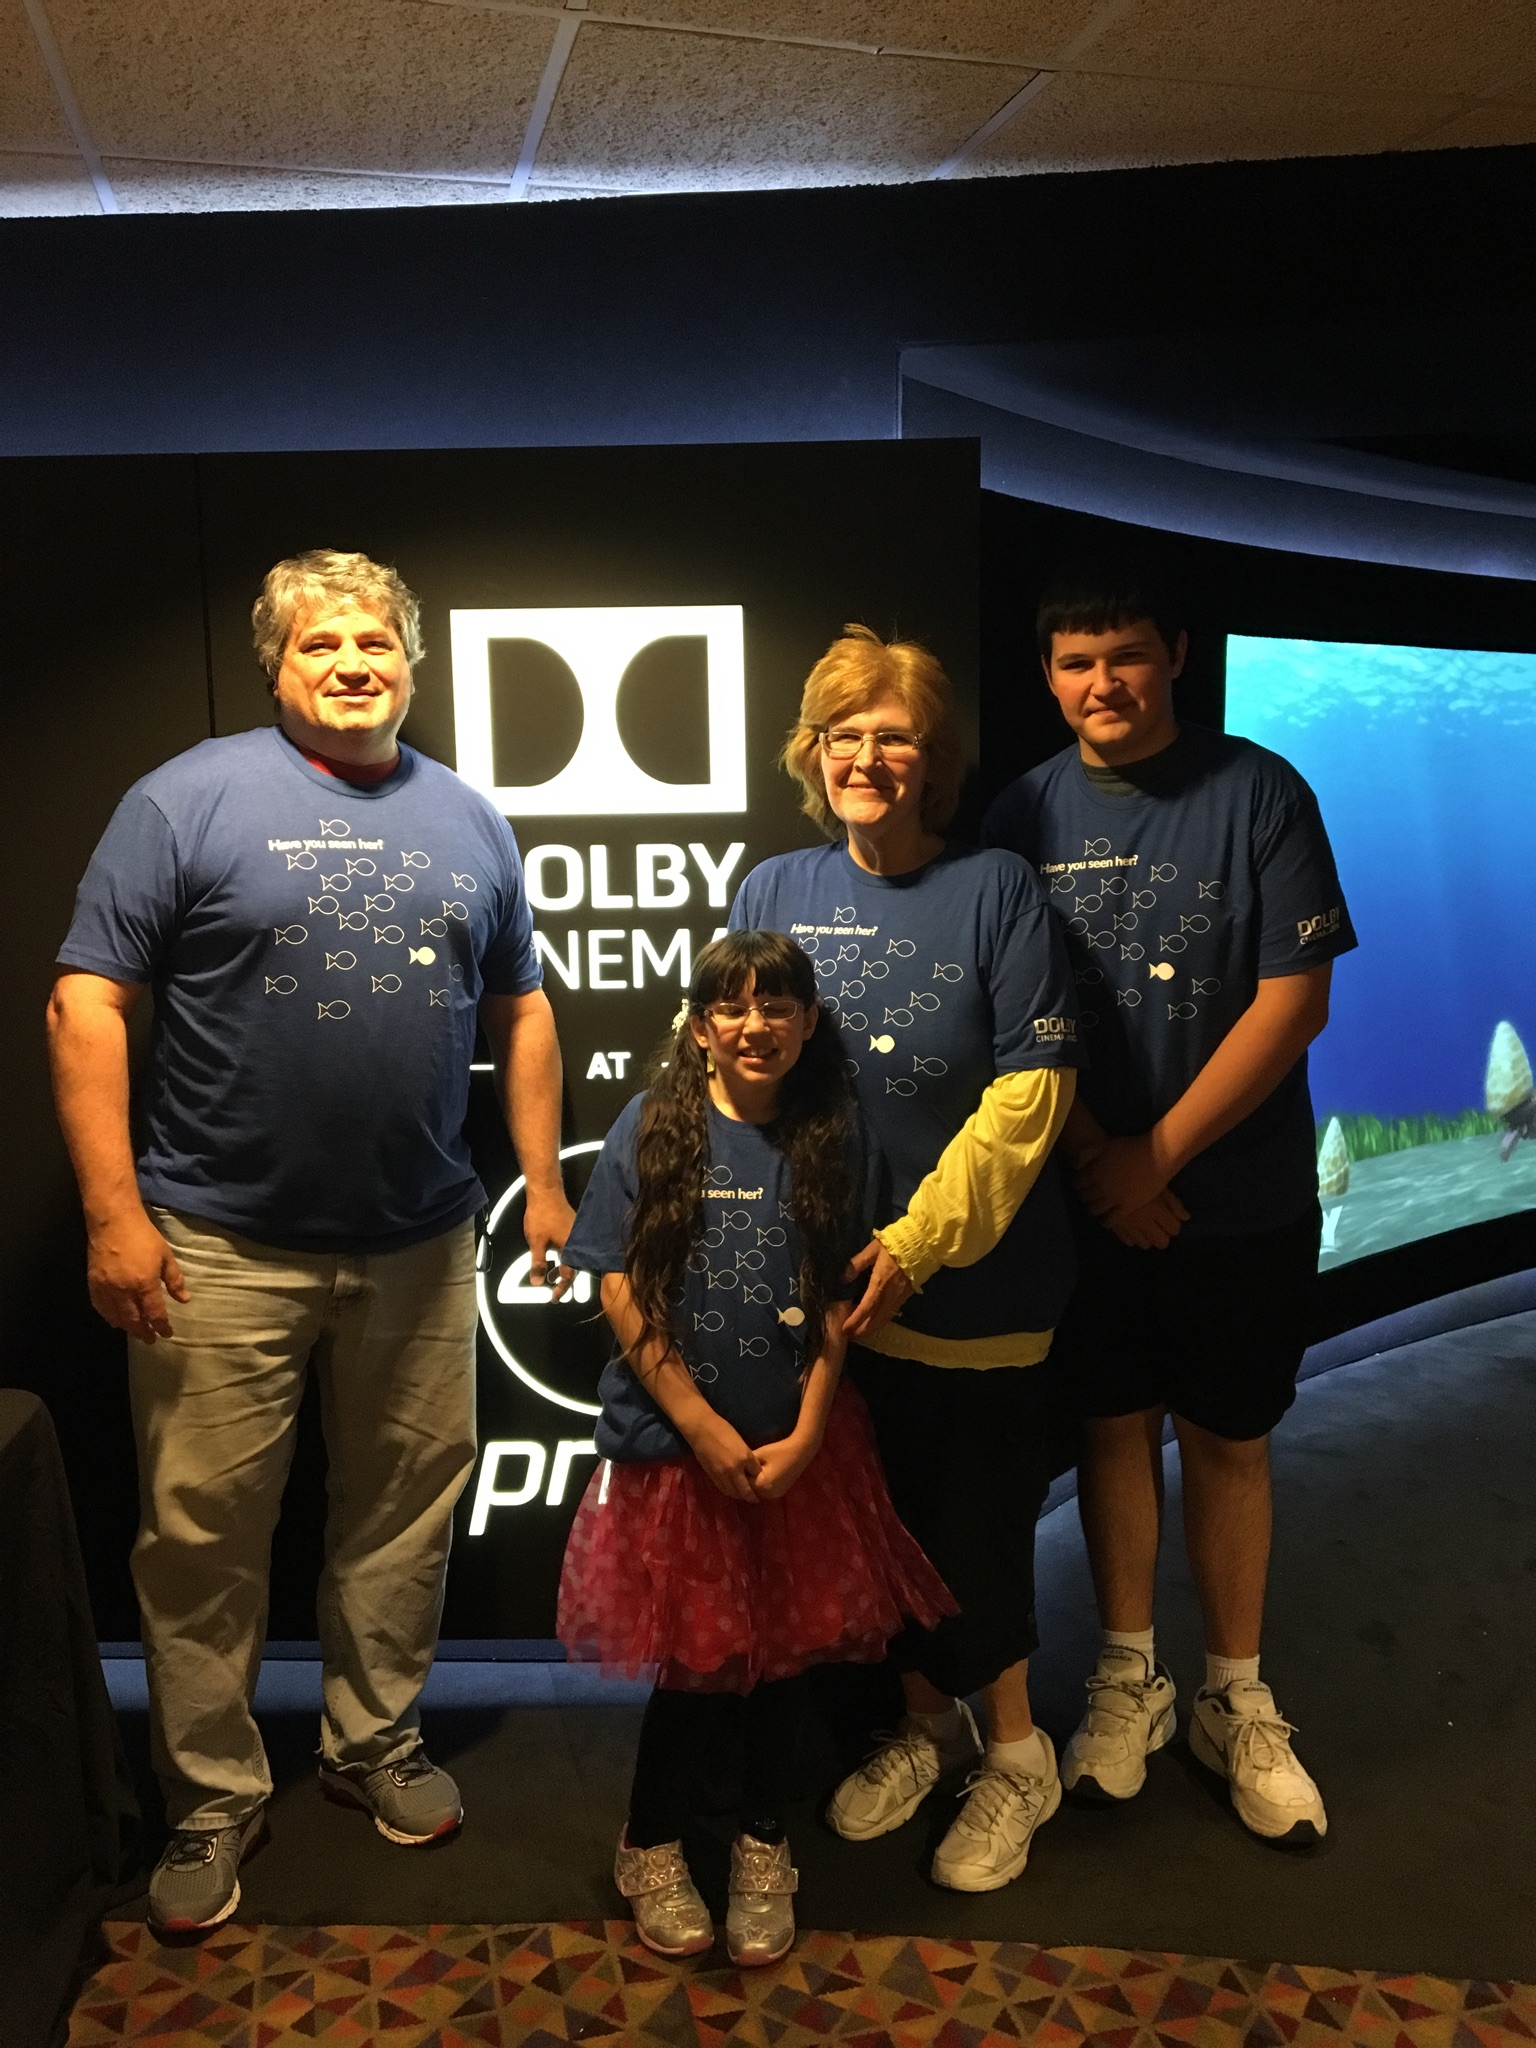 Willowbrook Amc 24 Finding Dory Dolby Cinema At Amc In Nyc Findingdory Dolbycinema